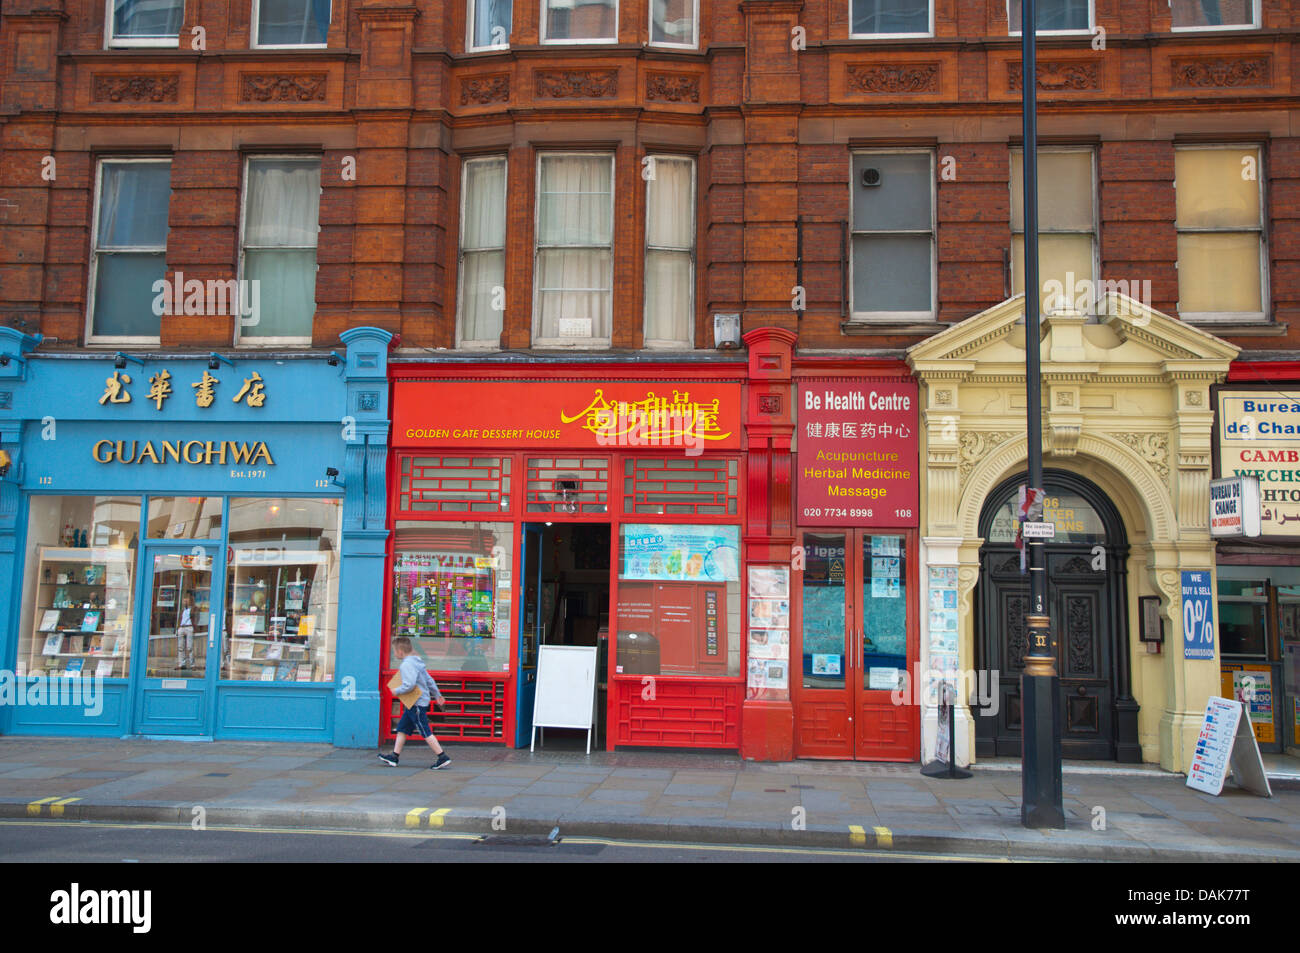 shops in Chinatown along Shaftesbury avenue street London England Britain UK Europe - Stock Image